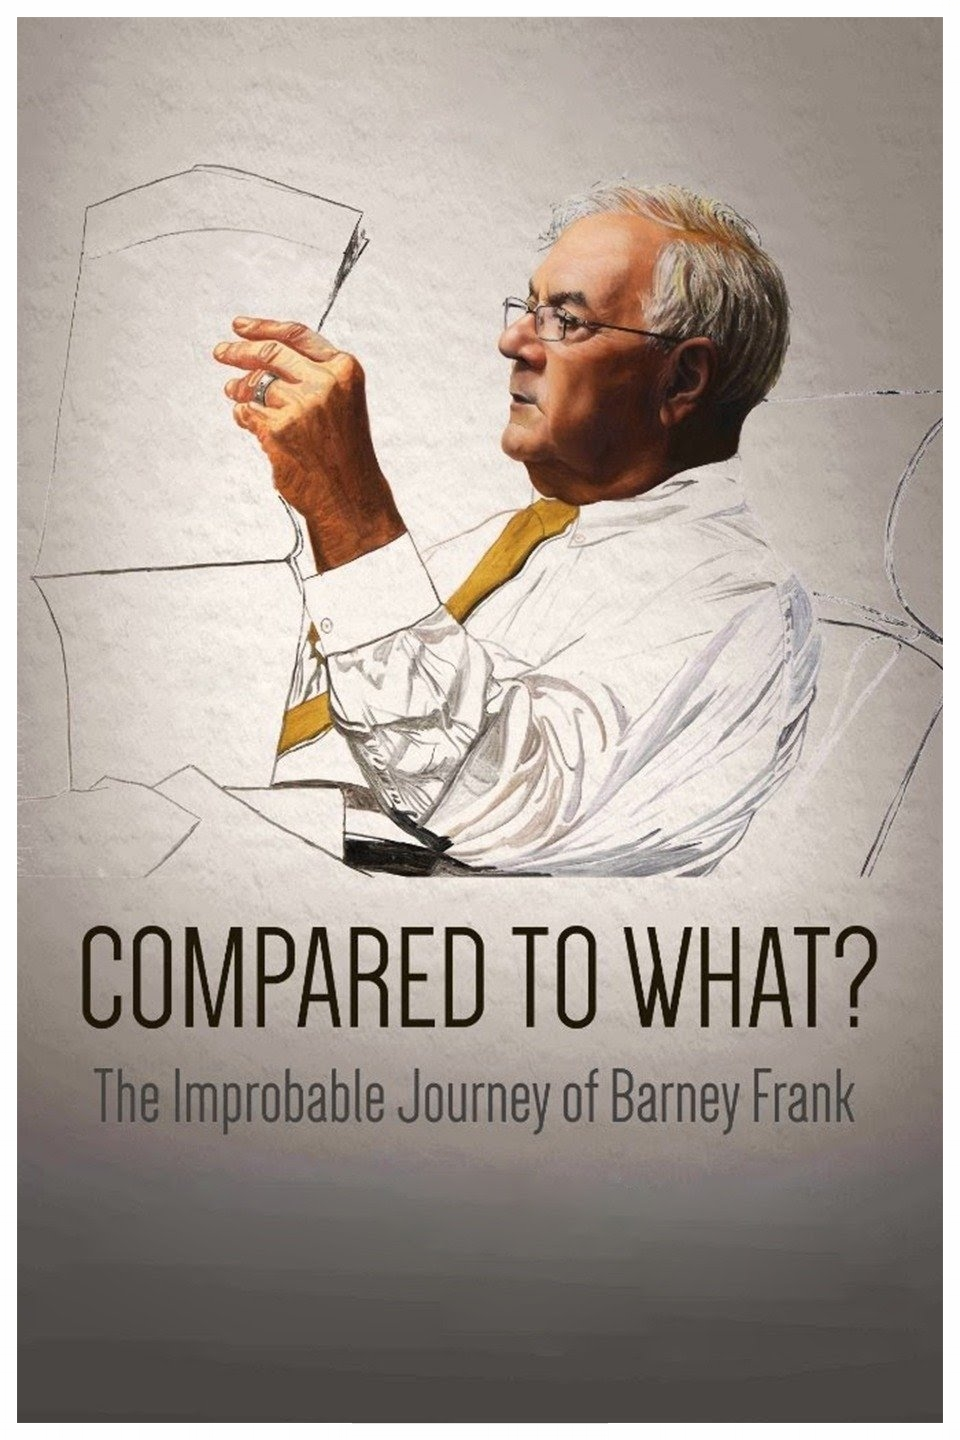 Compared to What? The Improbable Journey of Barney Frank